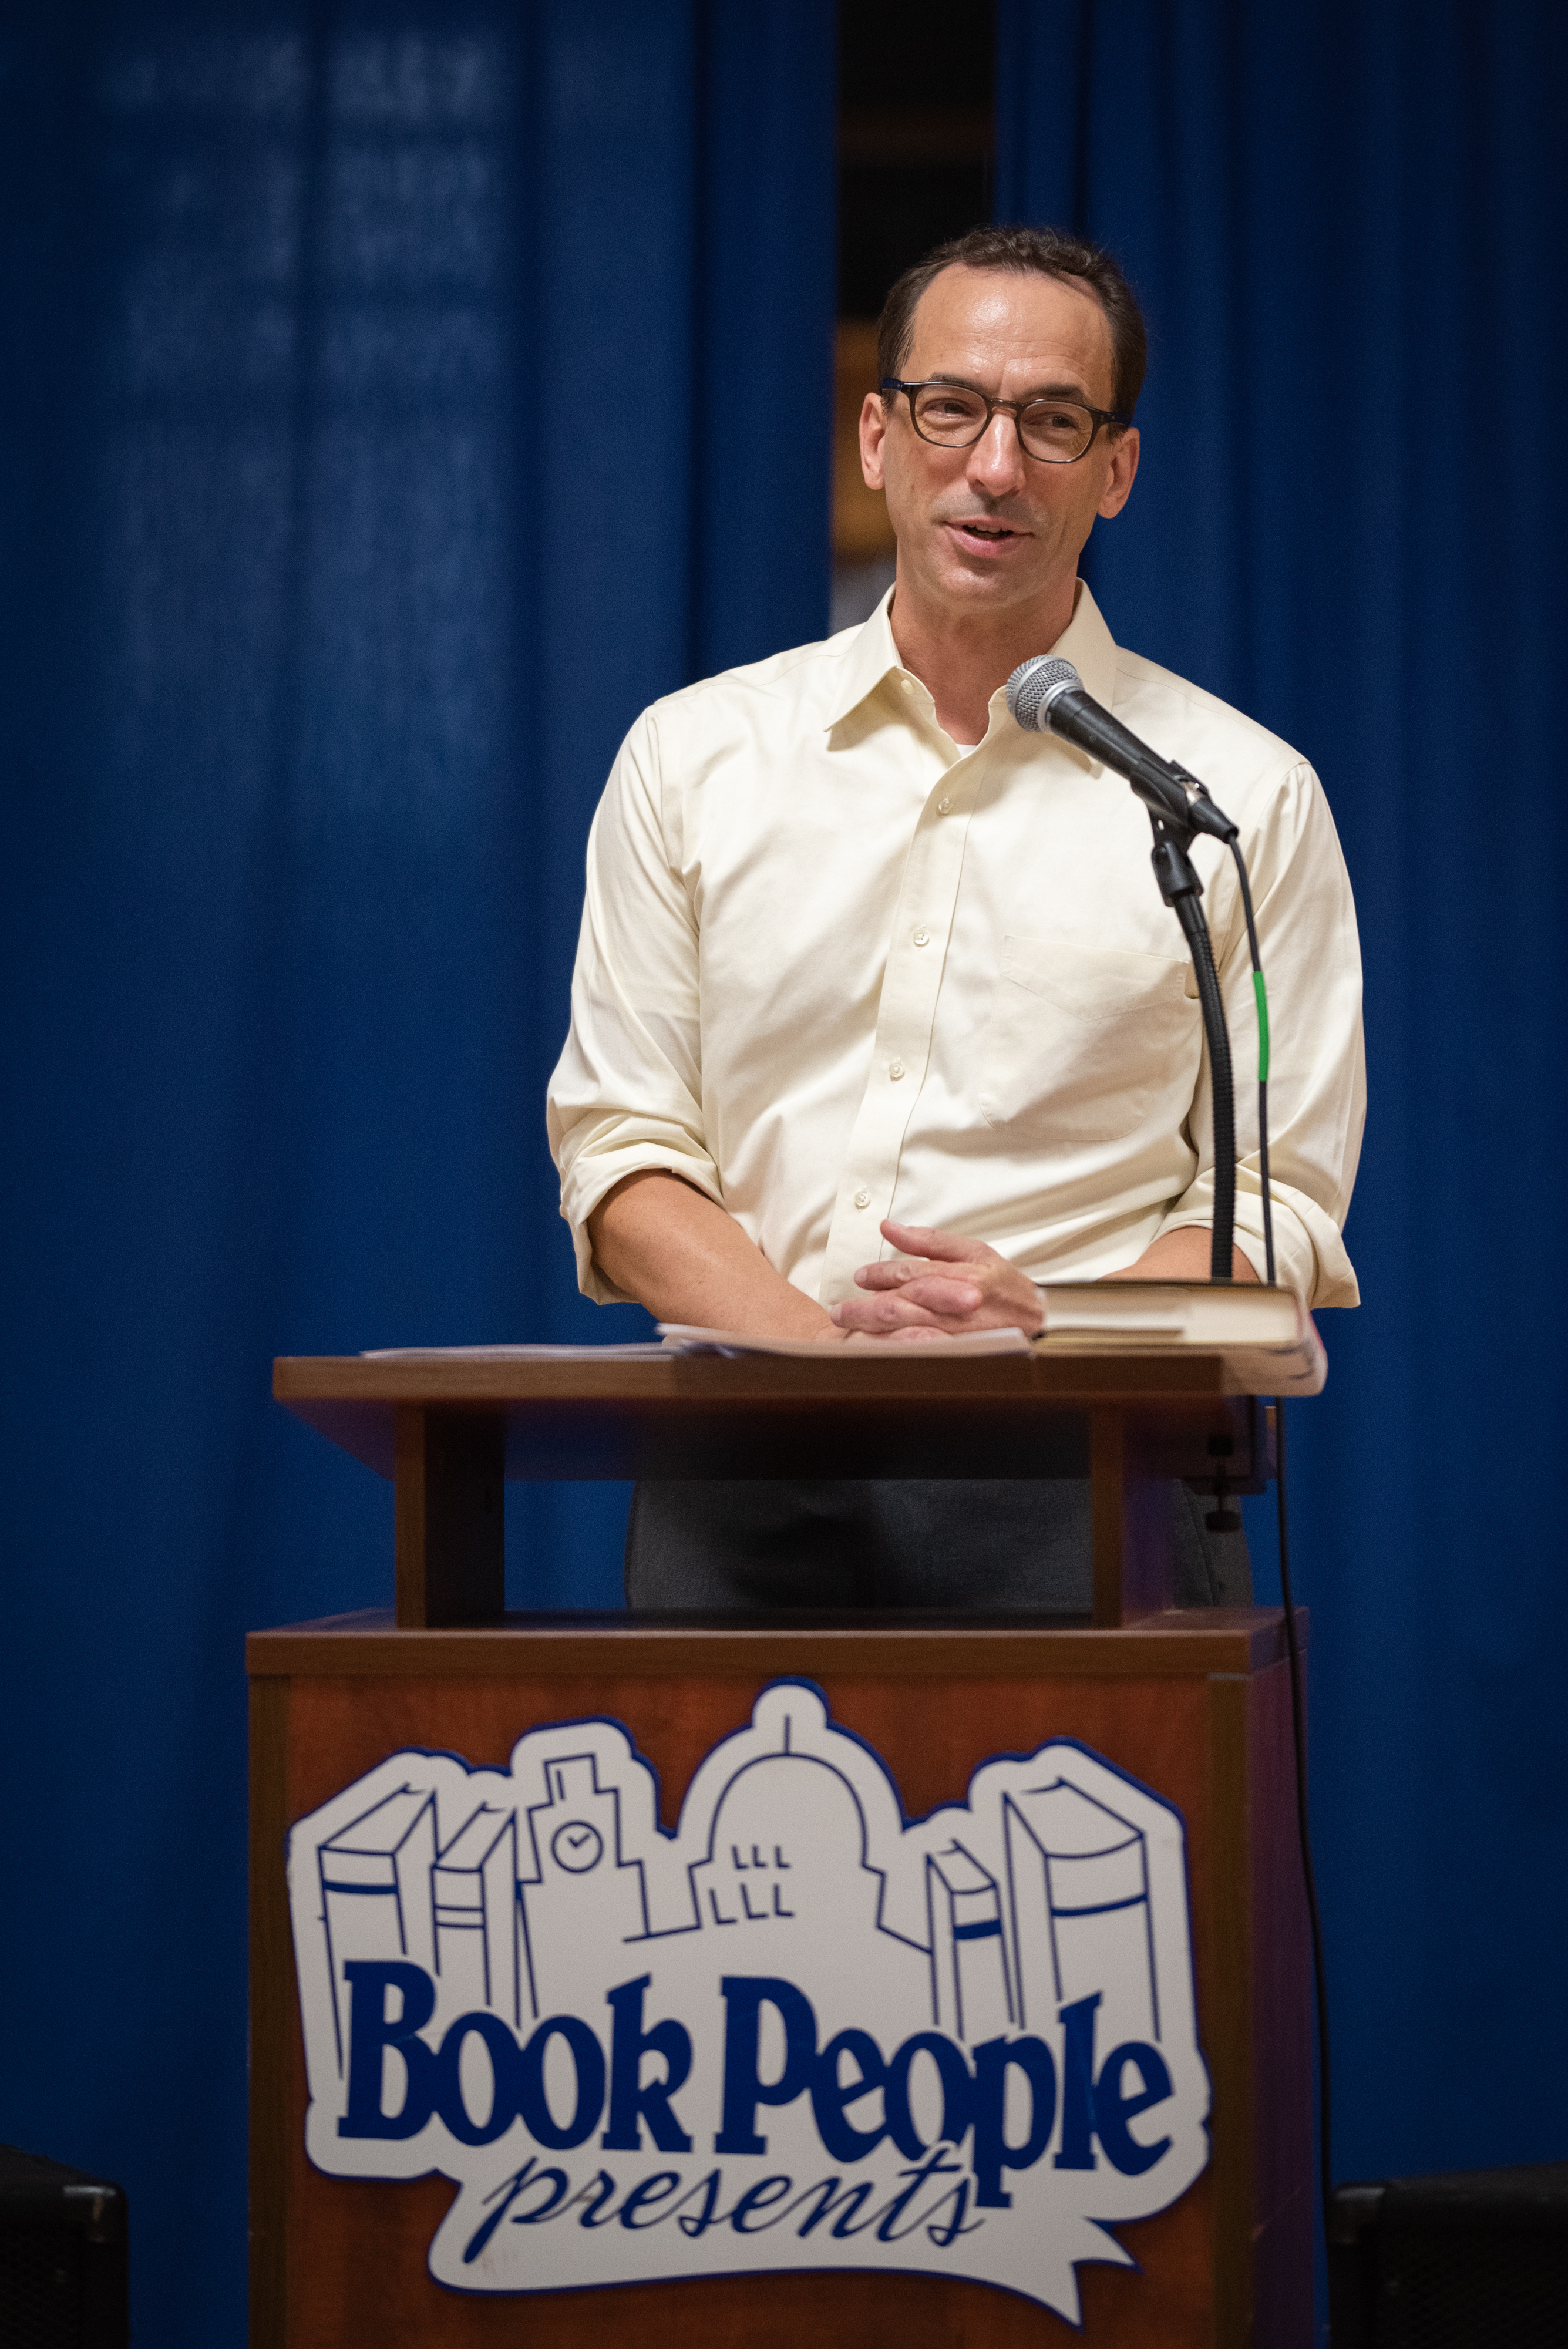 Paul Tough speaking at BookPeople